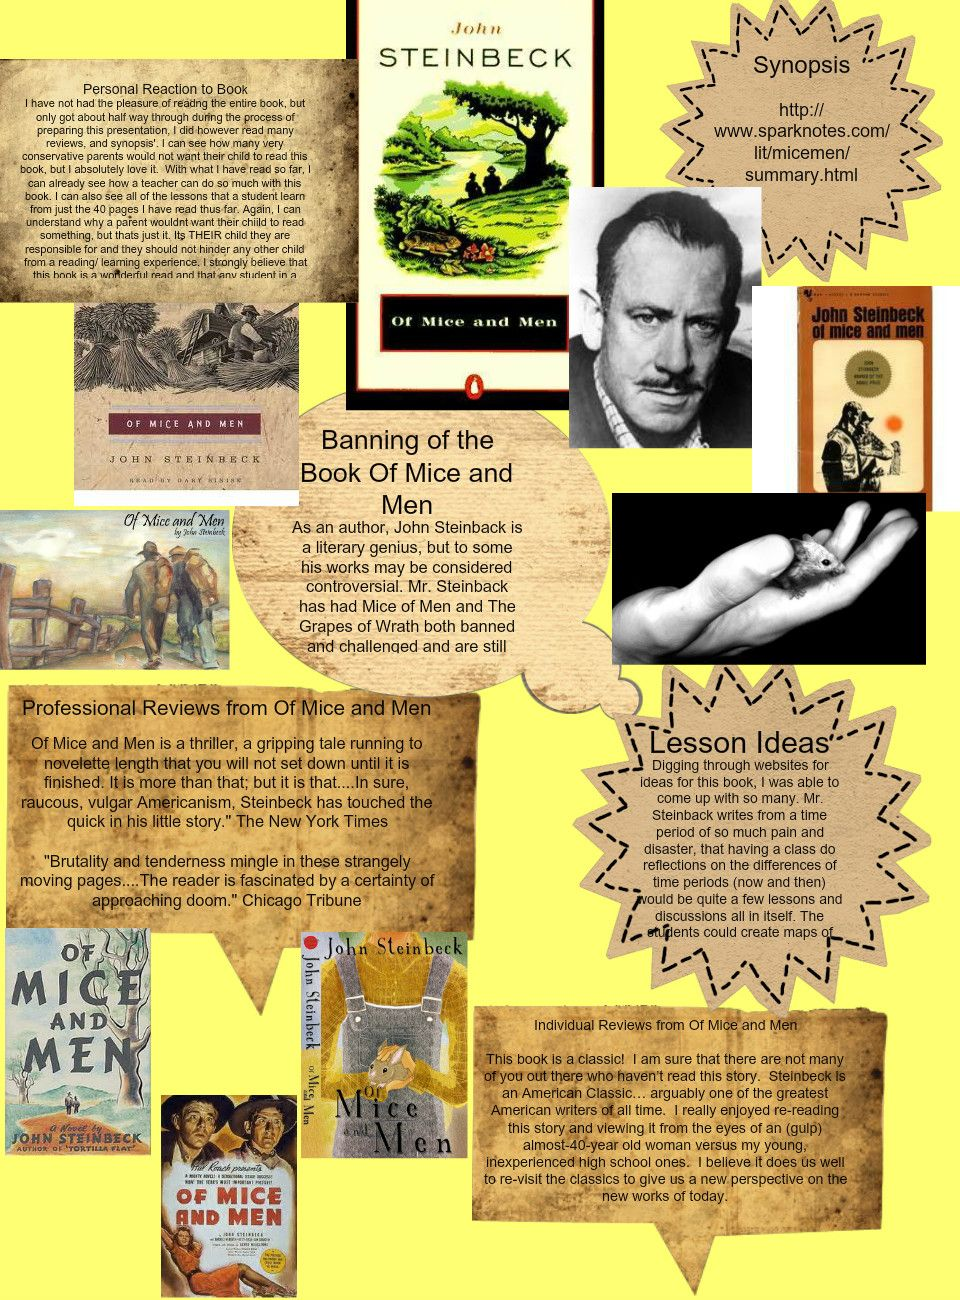 prejudice and segregation in of mice and men Steinbeck suggests that prejudice and discrimination are just part of american life of mice and men suggests that people who are discriminated will cut each other down rather than band together.